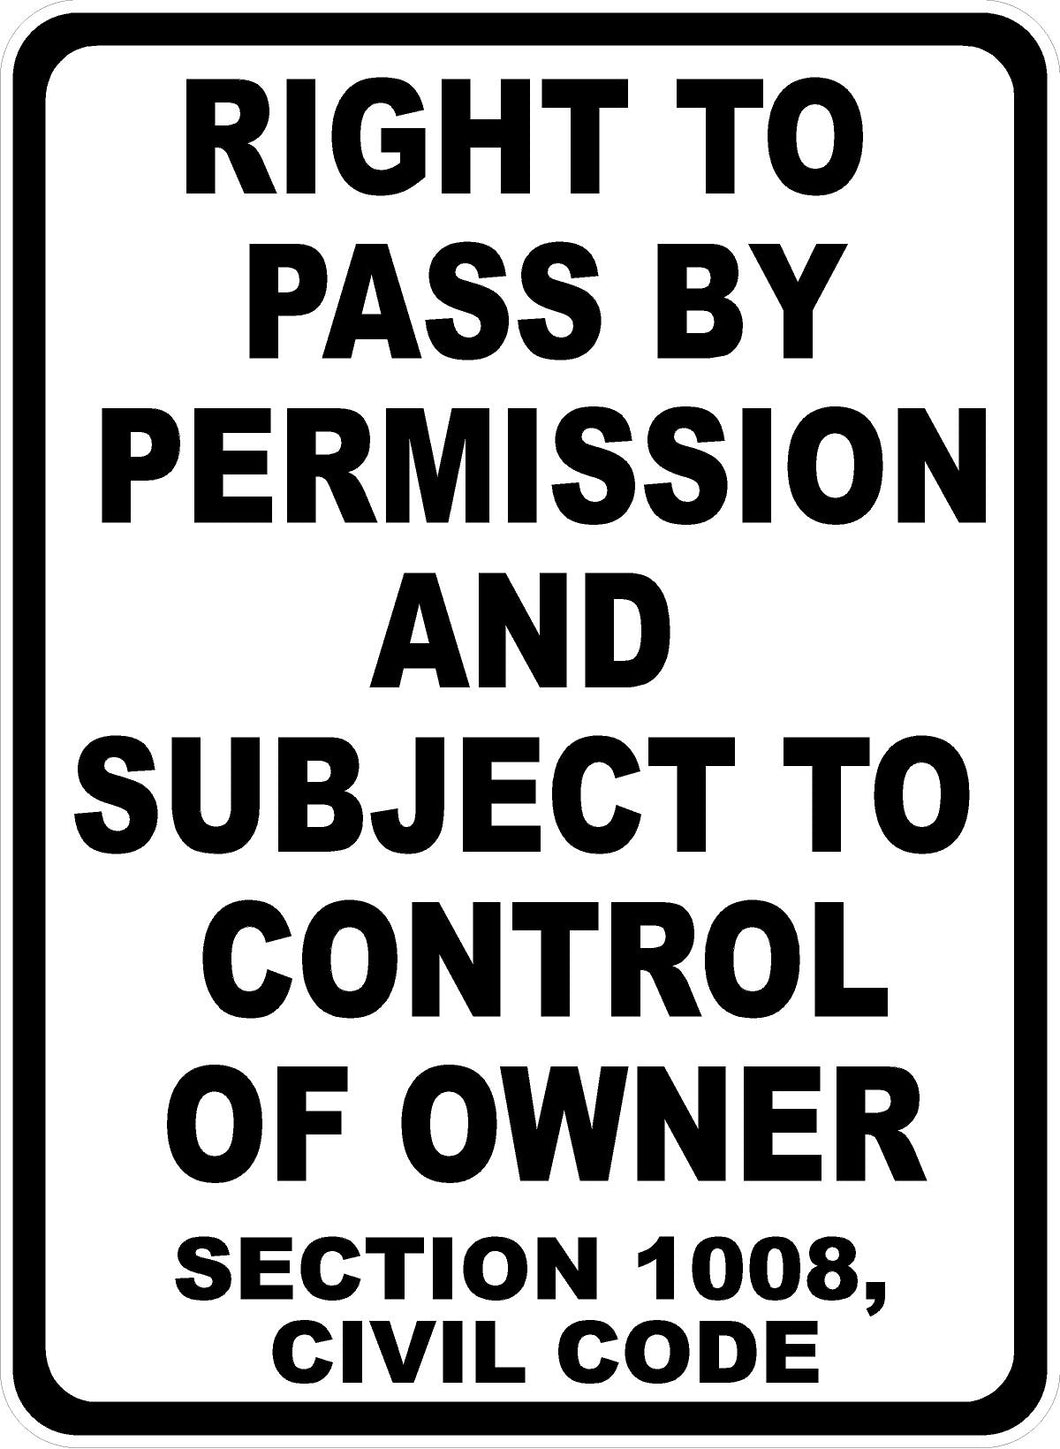 Right to Pass by Permission Subject Control of Owner Code 1008 Sign Vertical Format